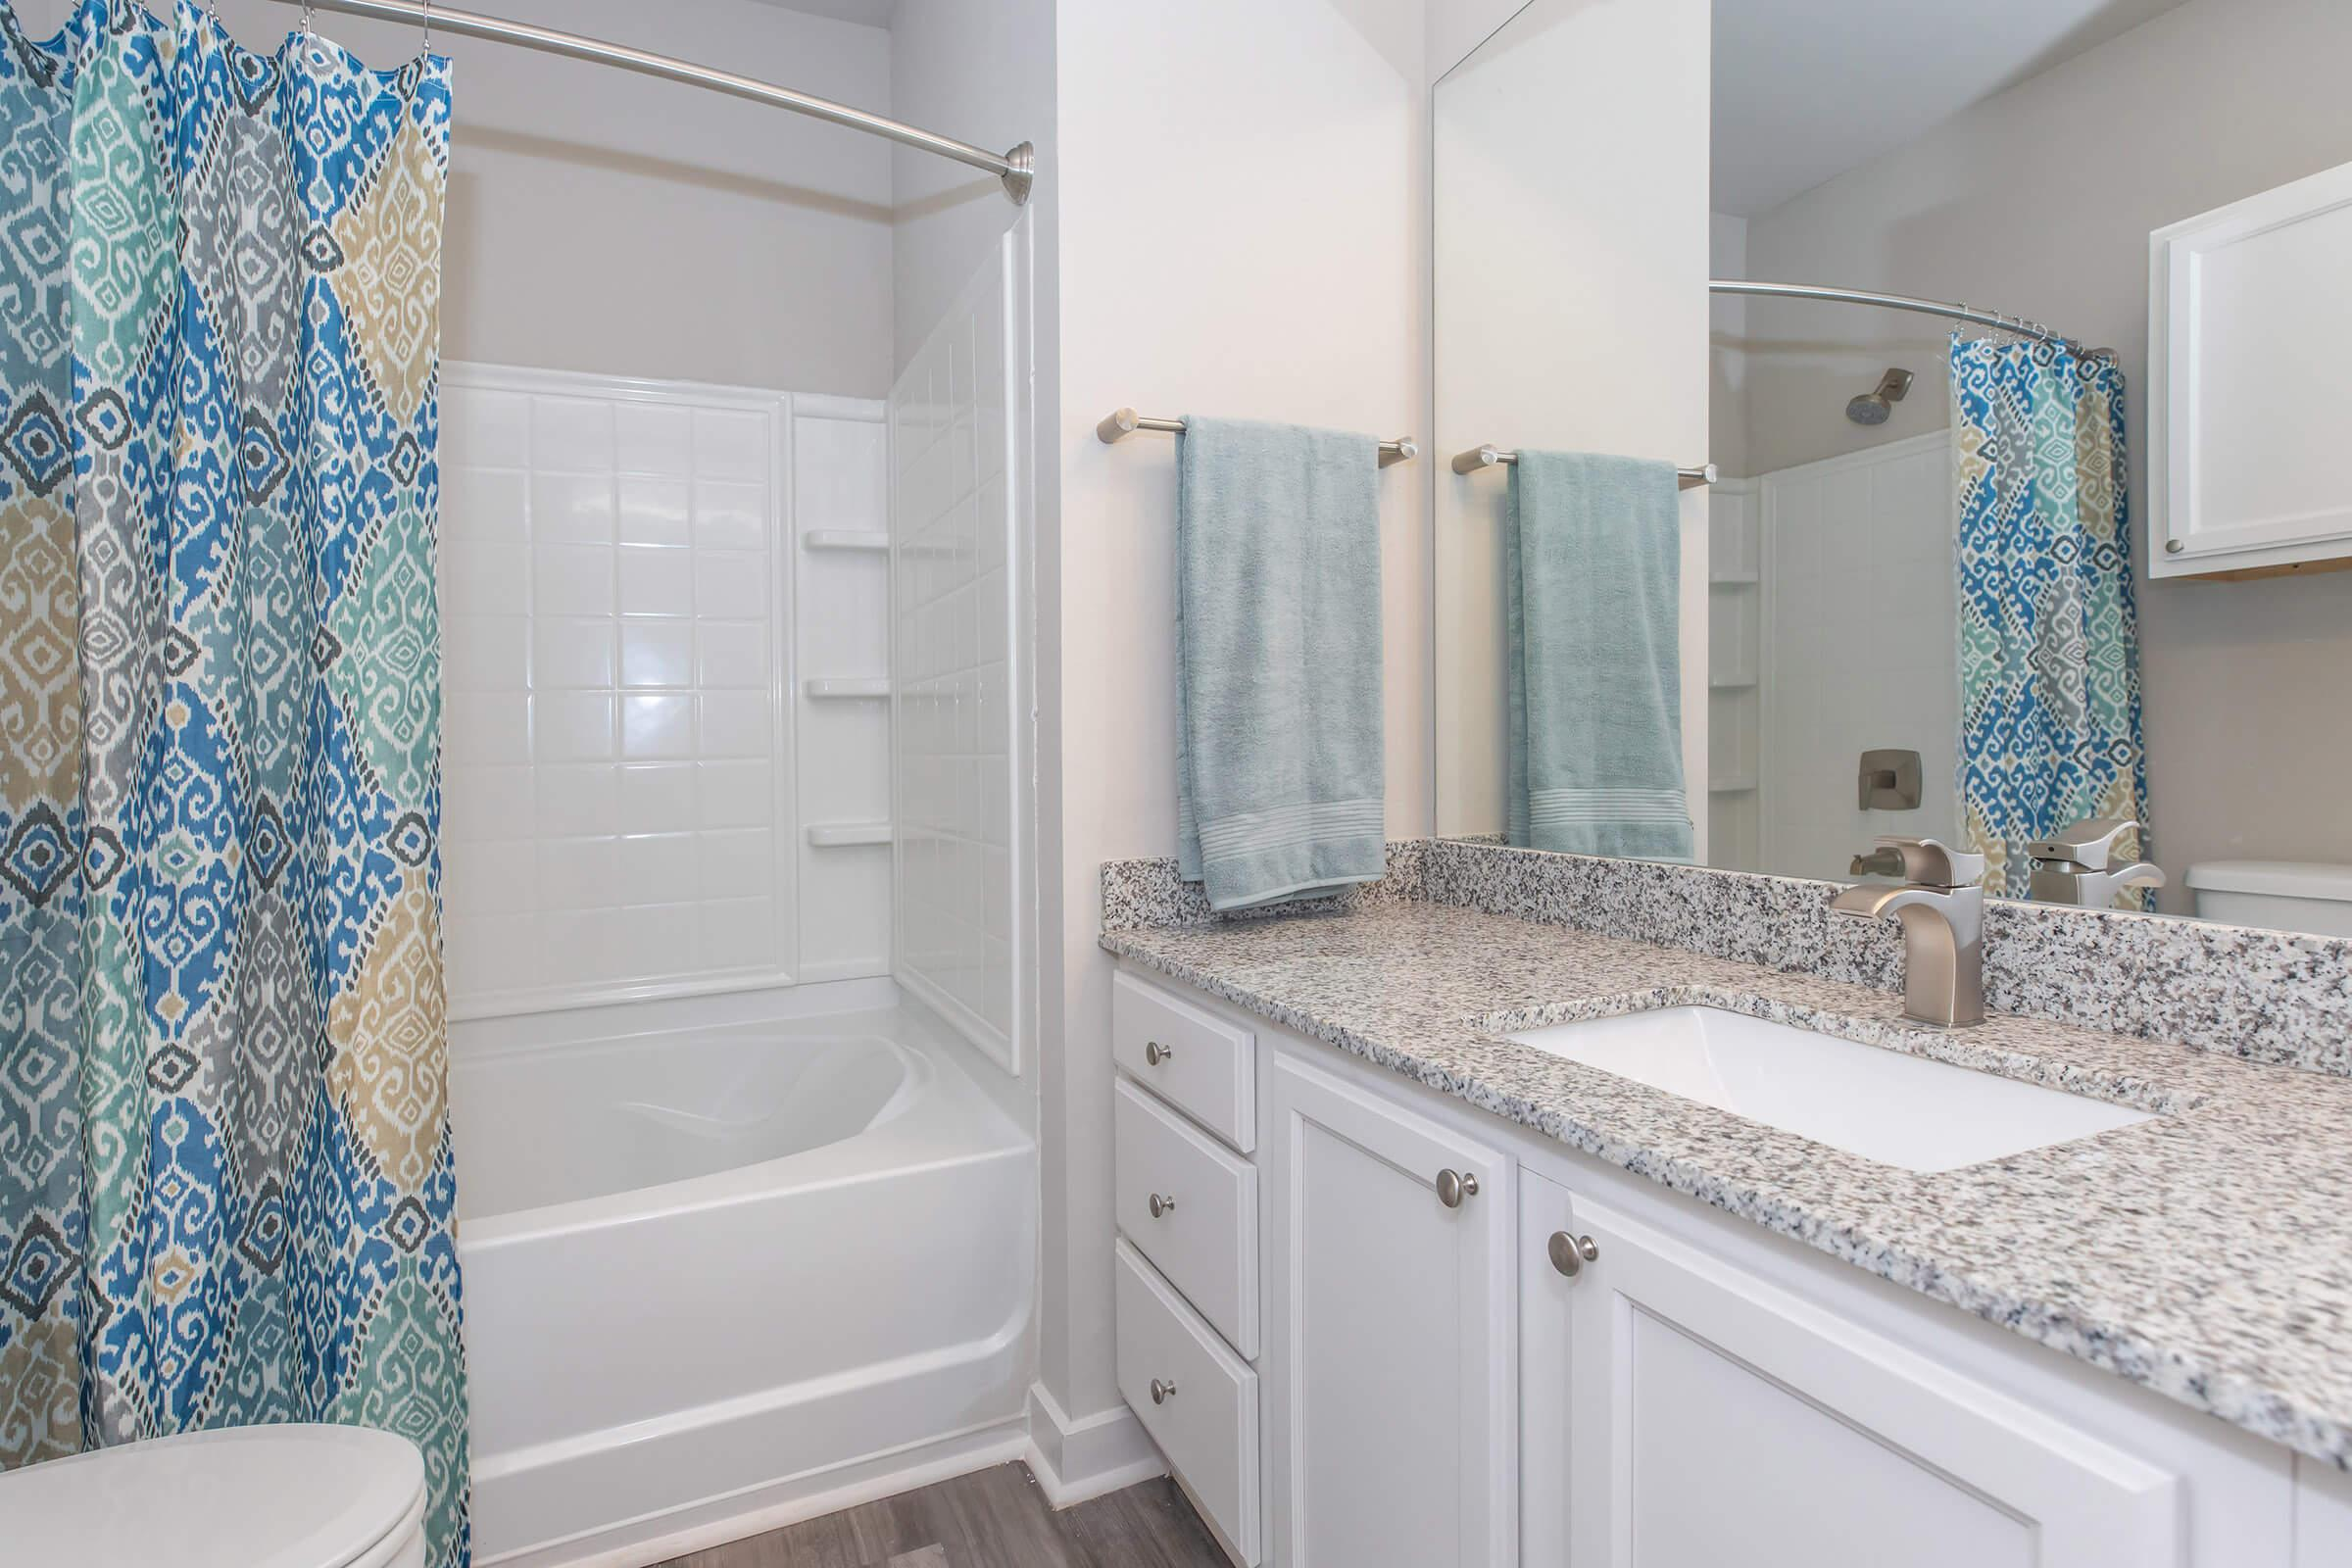 a shower curtain next to a sink